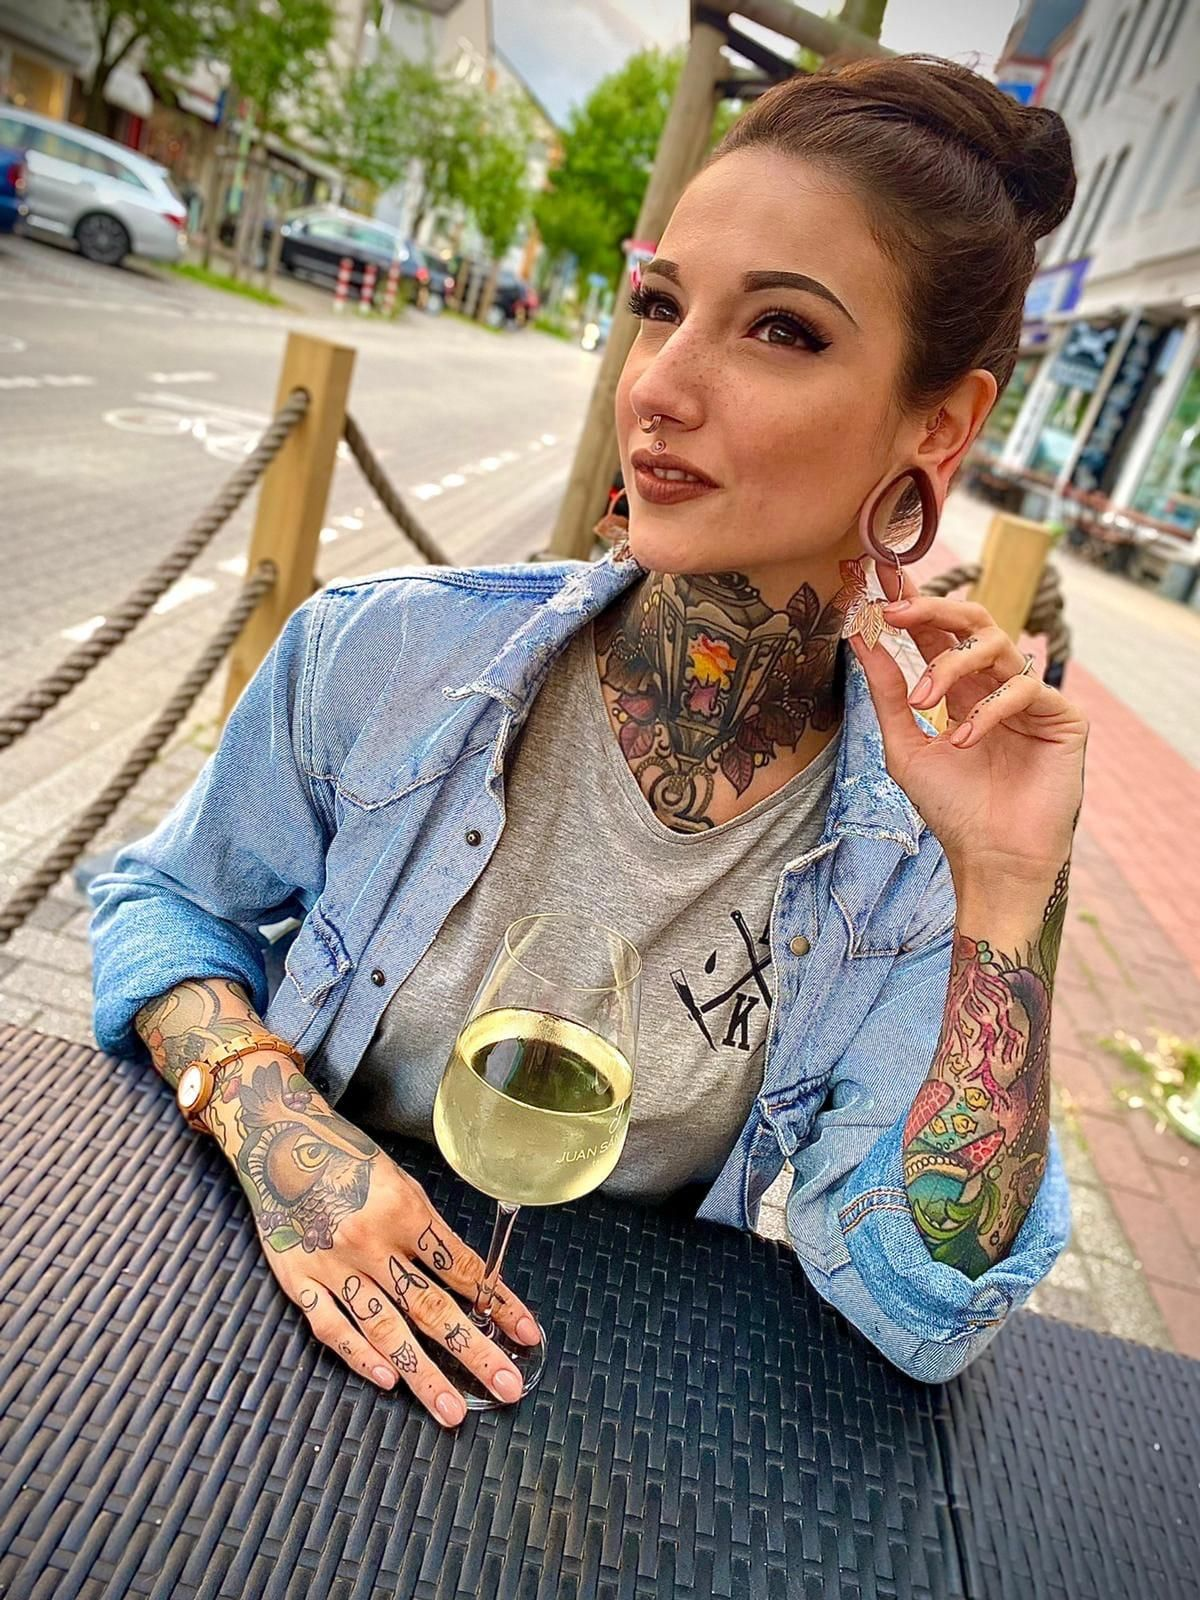 1628058902_87_Tattoos-Wildcat-Hoops-Perfection